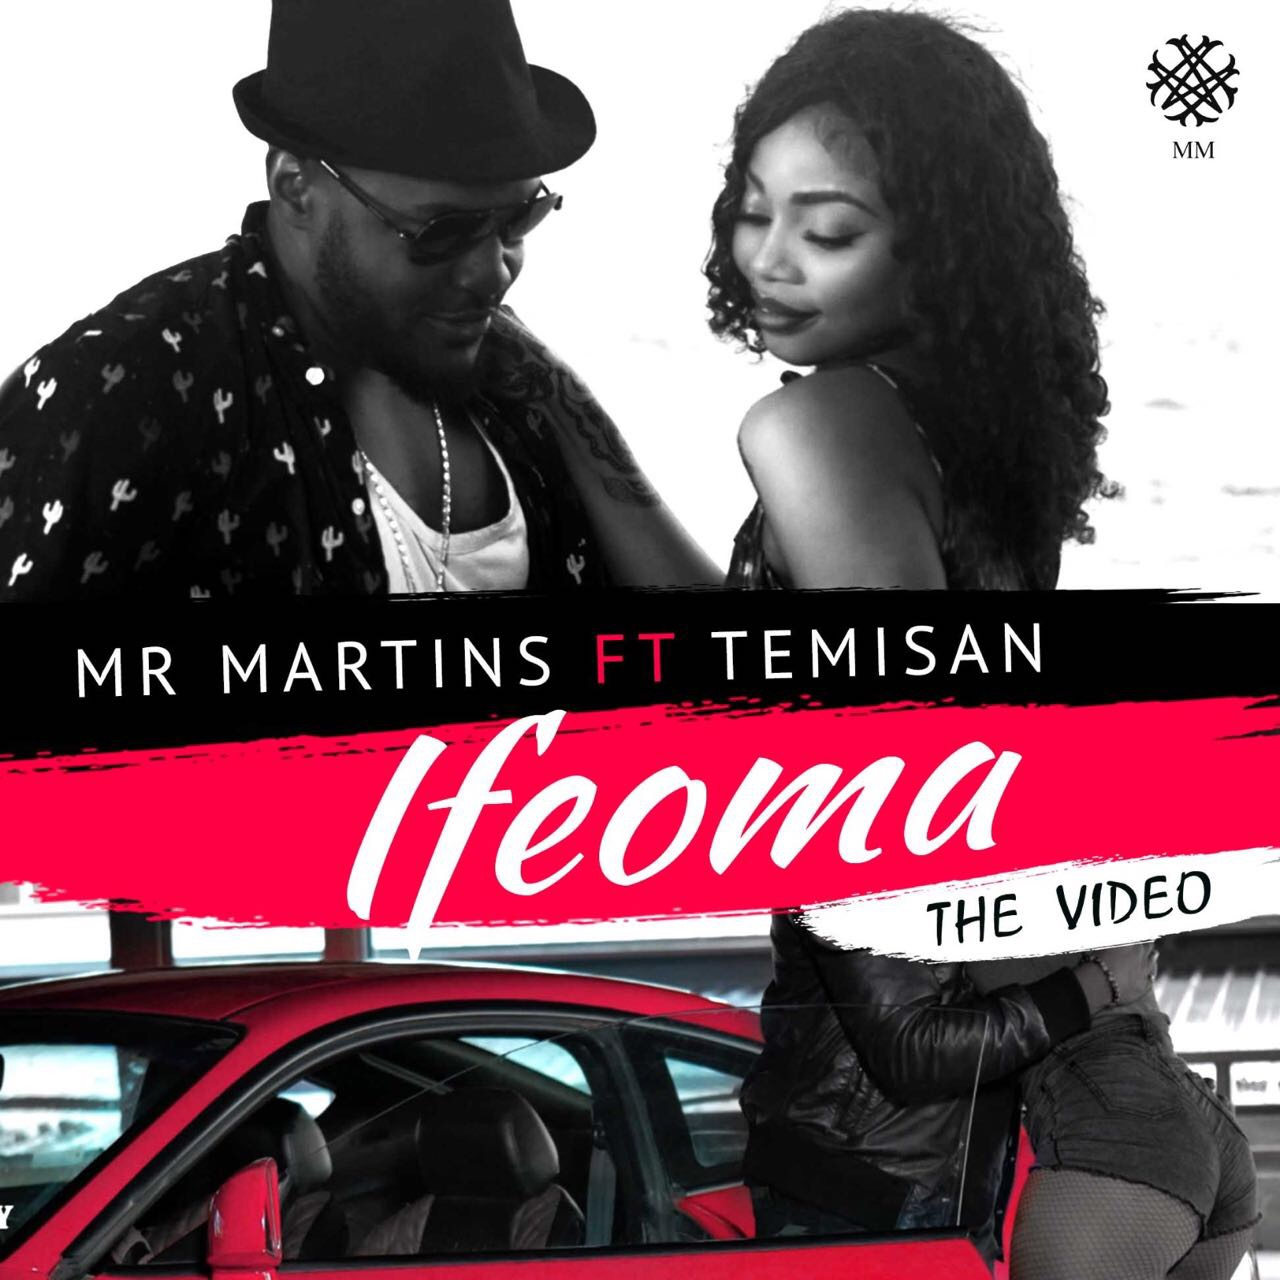 VIDEO: Mr Martins - Ifeoma ft. Temisan